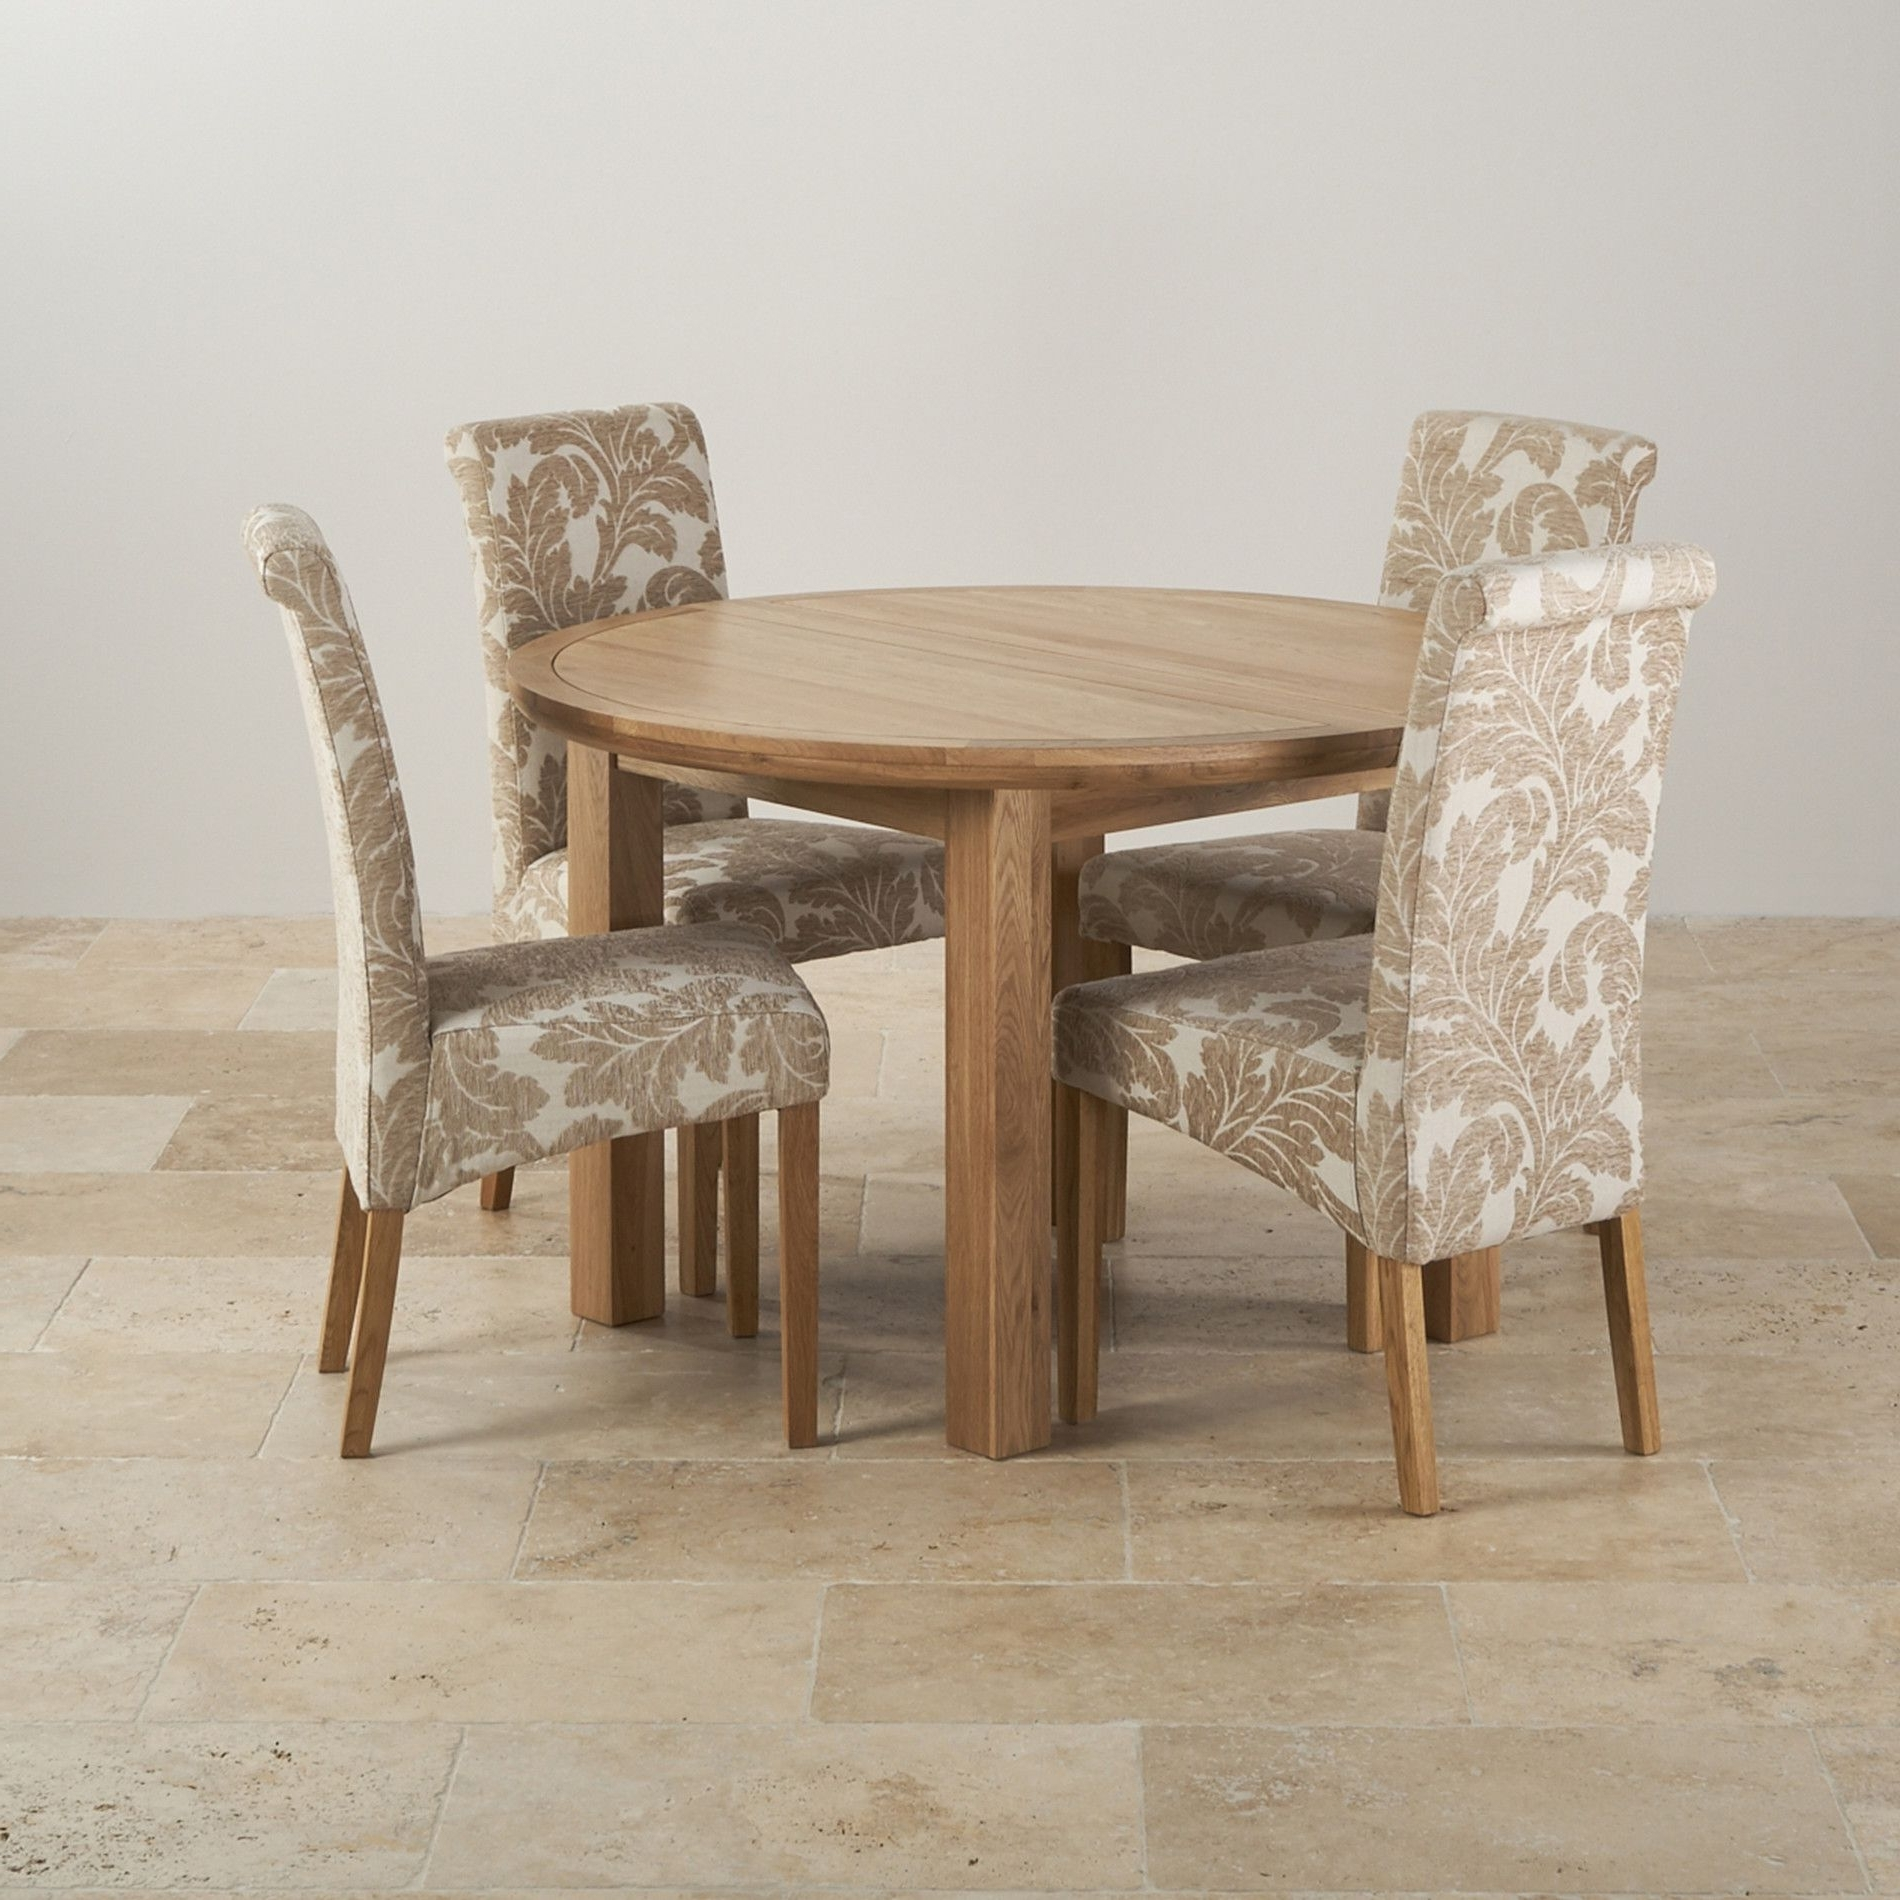 Round Oak Dining Tables And 4 Chairs Throughout Preferred Knightsbridge Natural Oak Dining Set – 4Ft Round Extending Table &  (View 4 of 25)